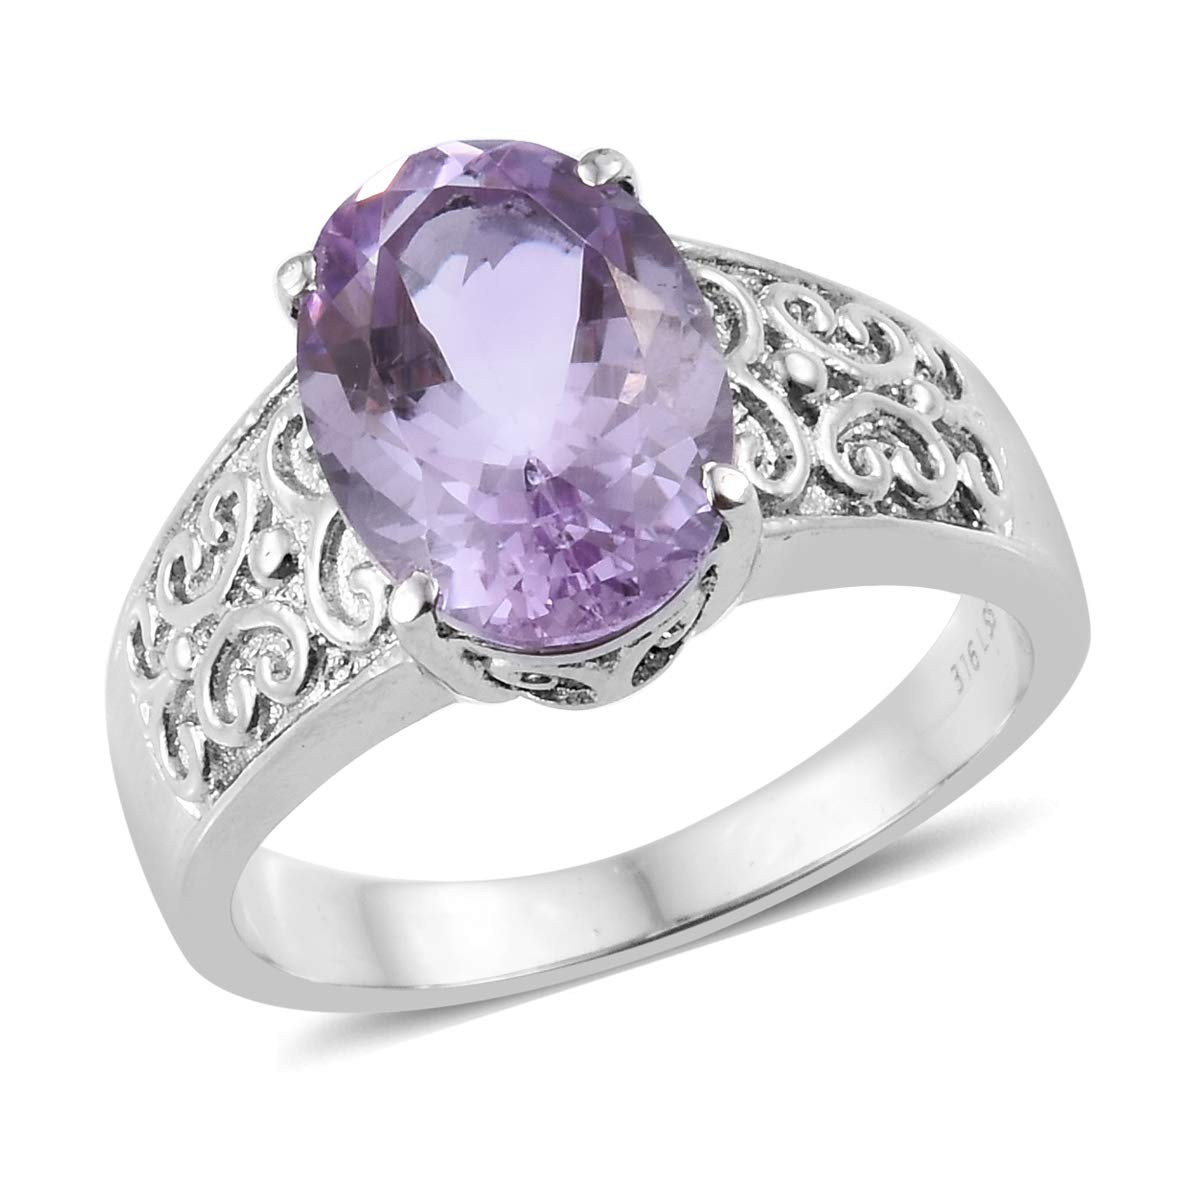 Shop LC Delivering Joy Solitaire Ring Stainless Steel Oval Pink Amethyst Gift Jewelry for Women Size 10 Cttw 4.1